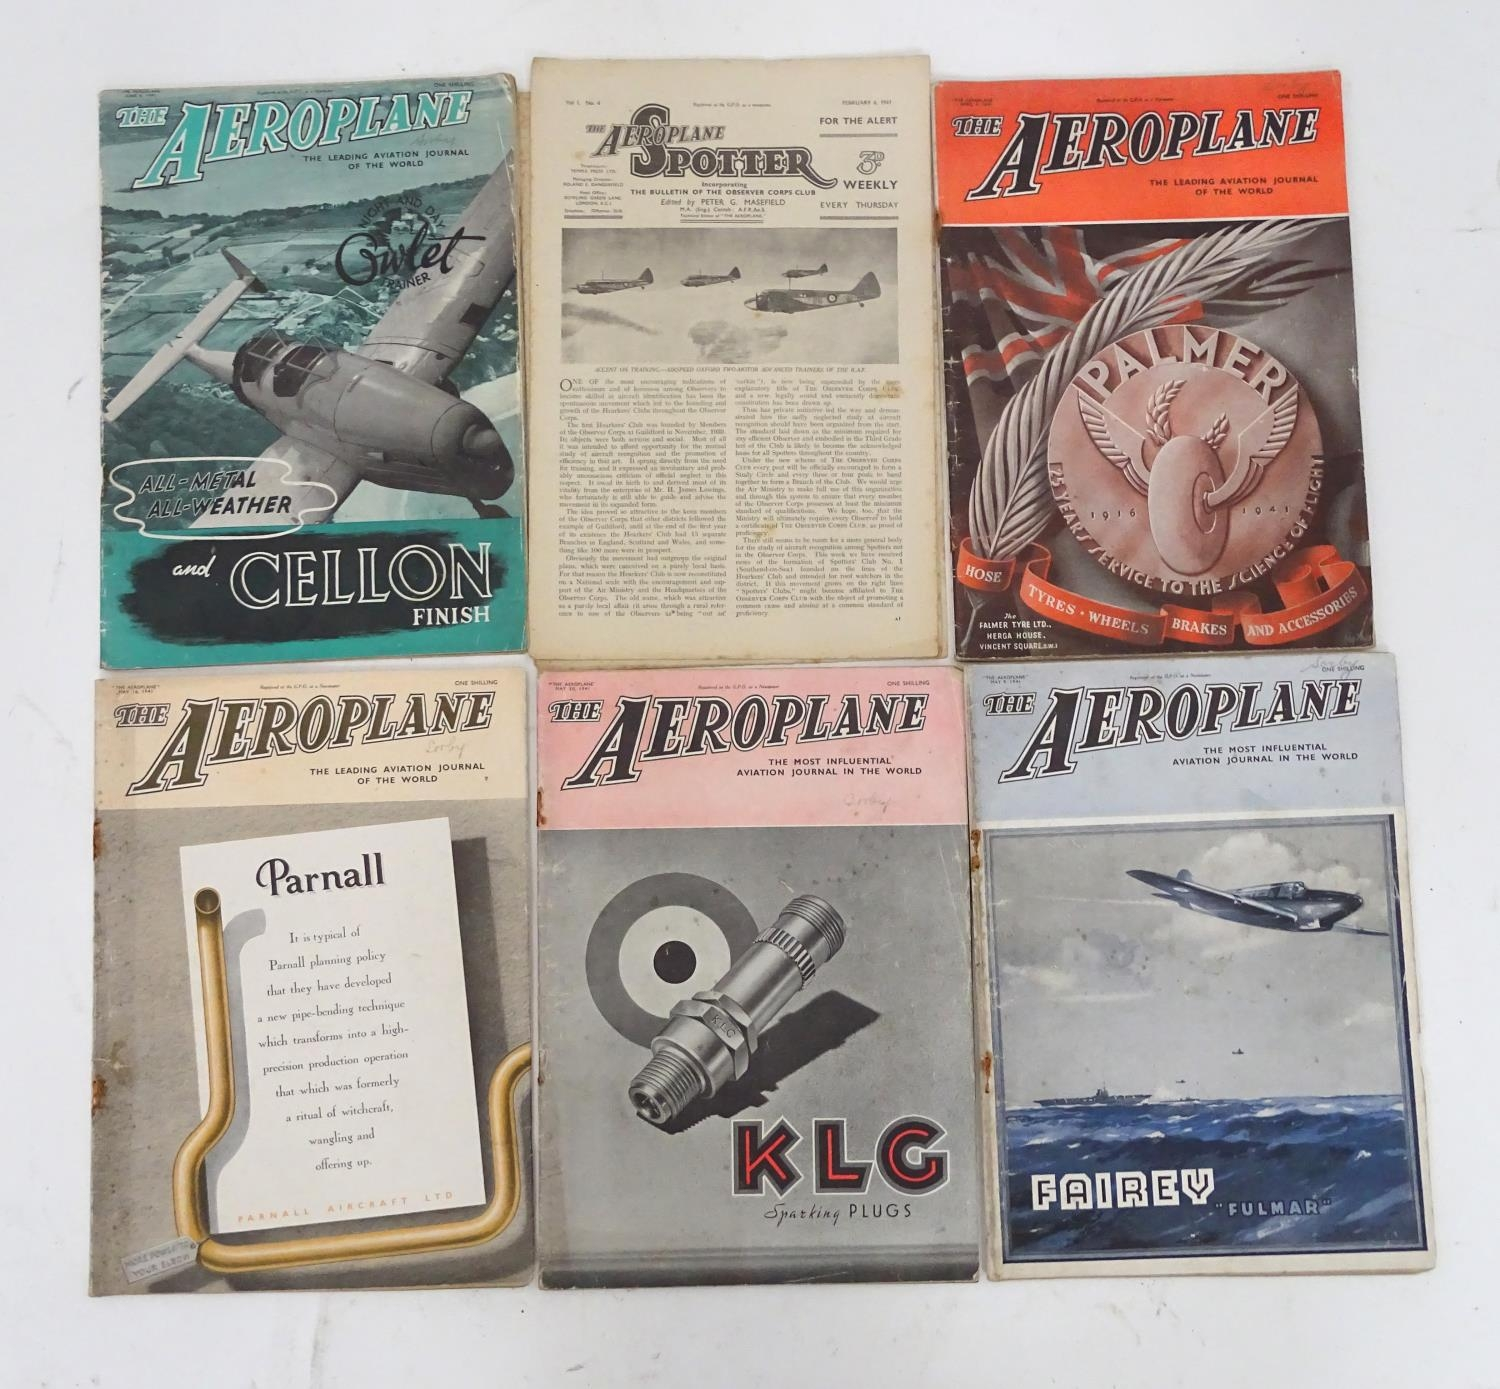 A quantity of 1941 copies of The Aeroplane Spotter magazine and The Aeroplane (8) Please Note - we